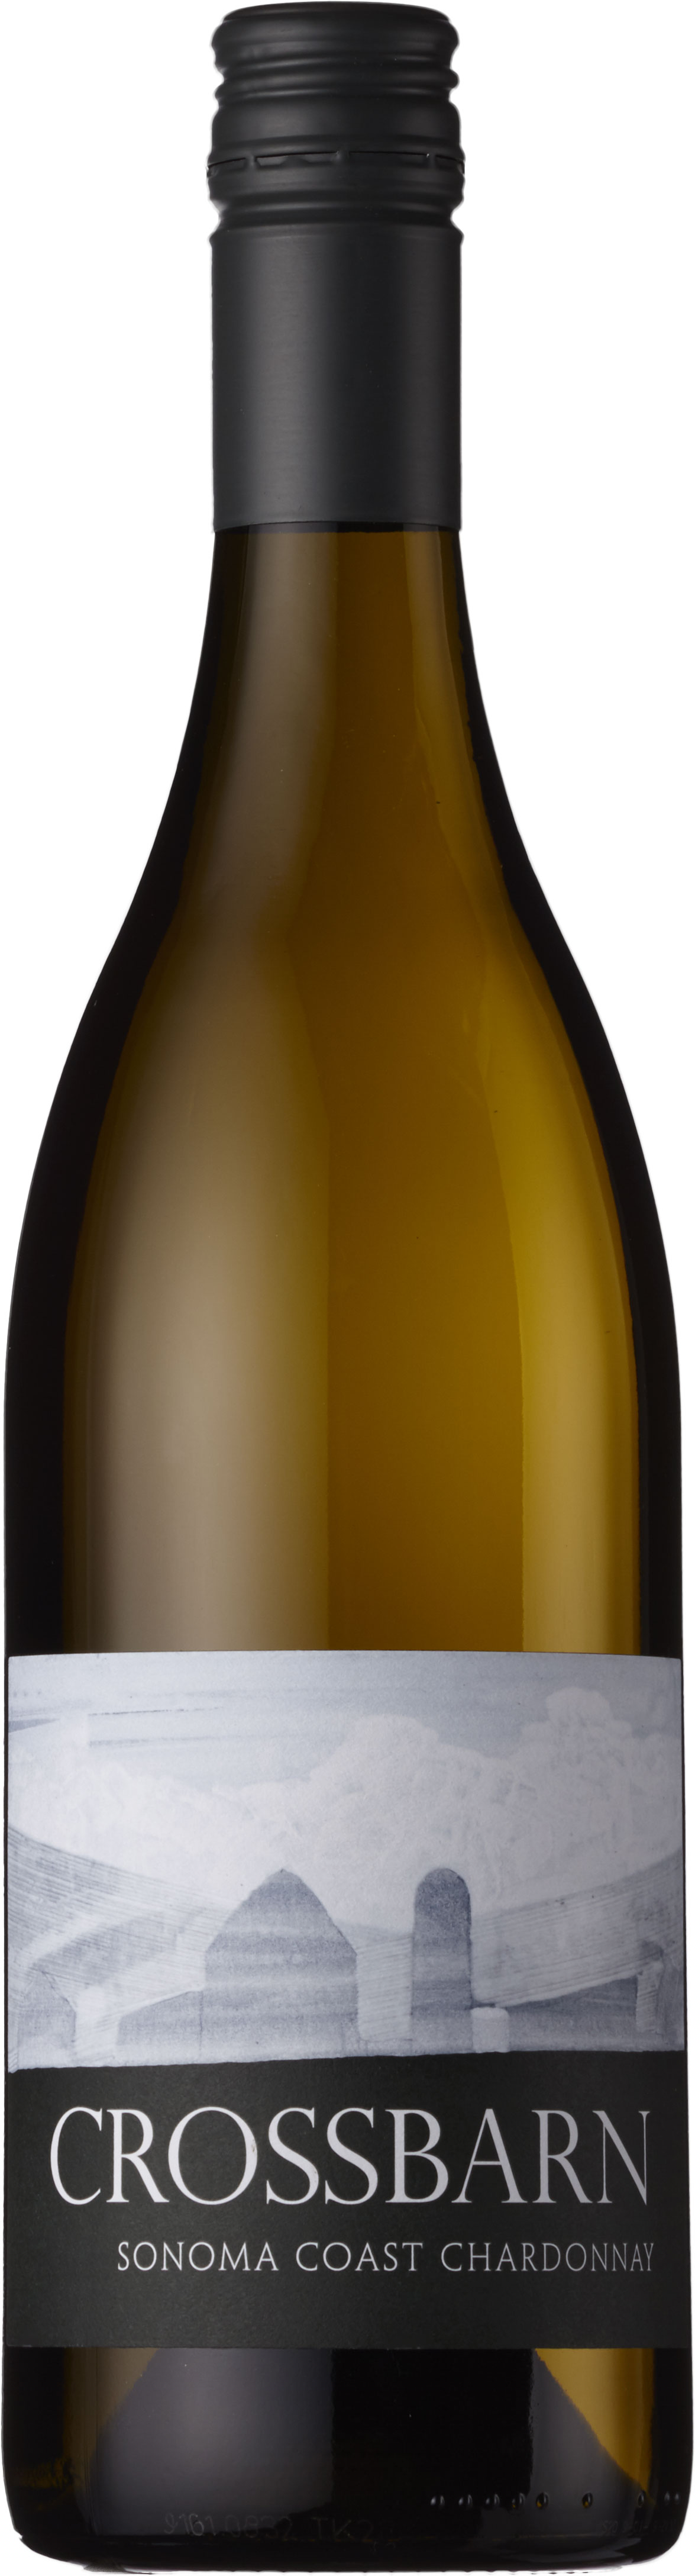 Paul Hobbs - Crossbarn Chardonnay Sonoma Coast California 2017 12x 75cl Bottles